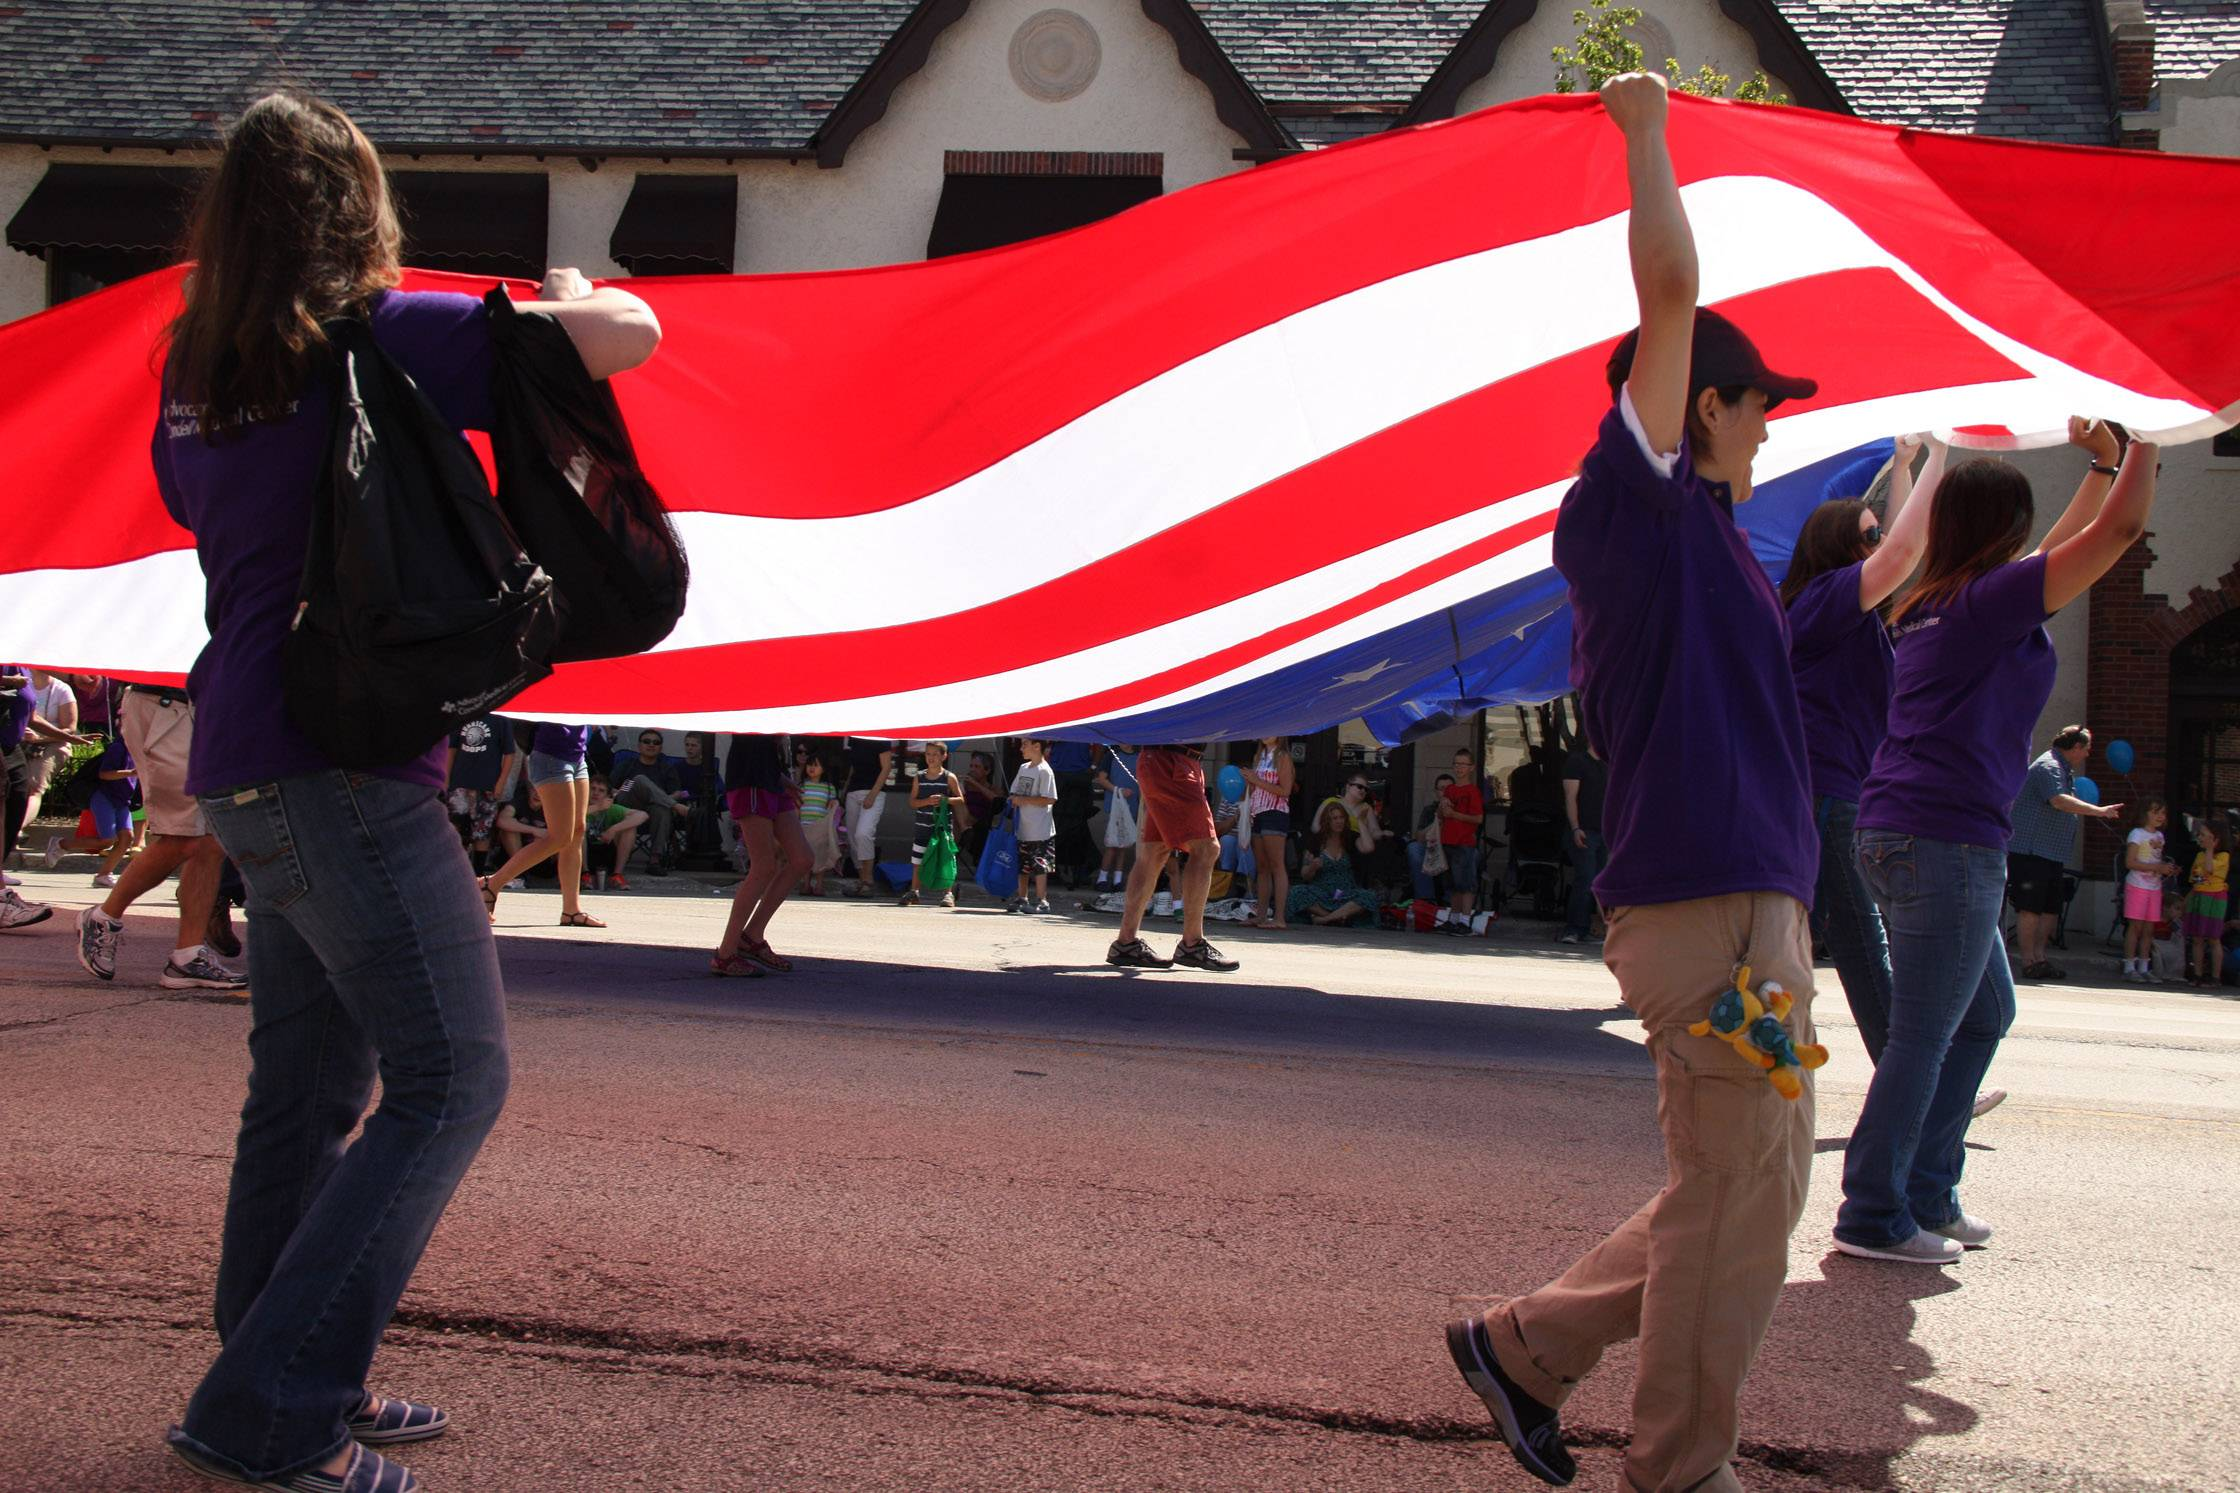 The sunlight brightens an enormous flag as it is carried down the street during the Libertyville Days Parade.